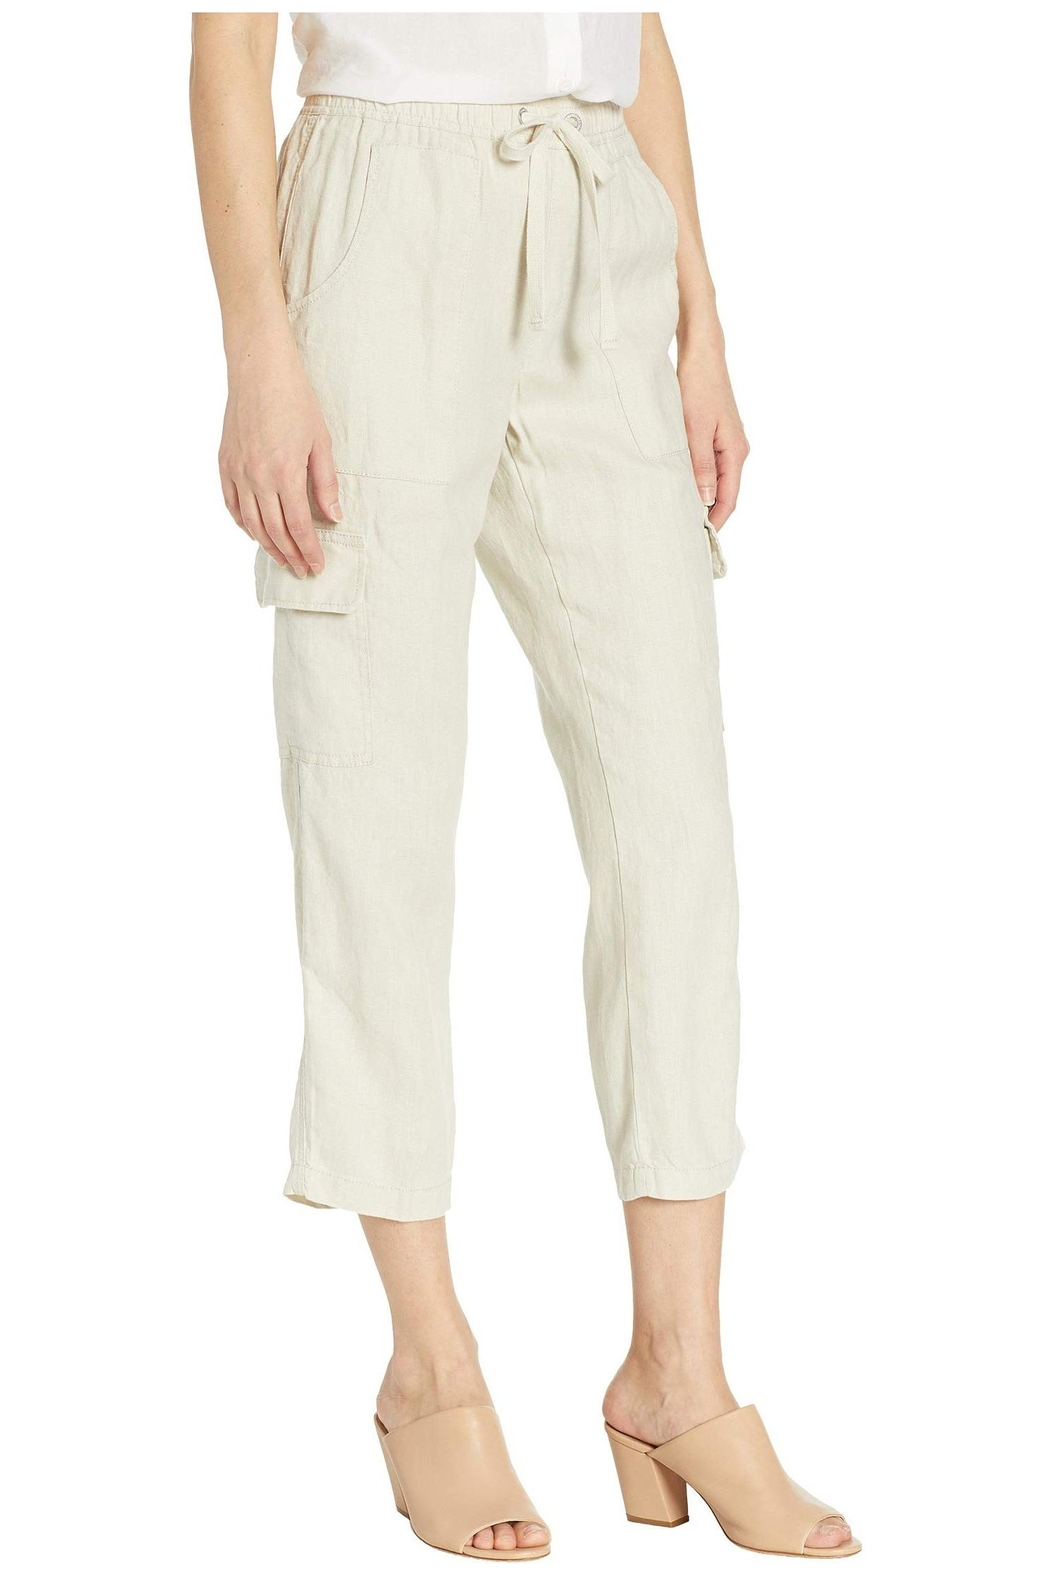 Sanctuary Discoverer Cargo Pant - Back Cropped Image